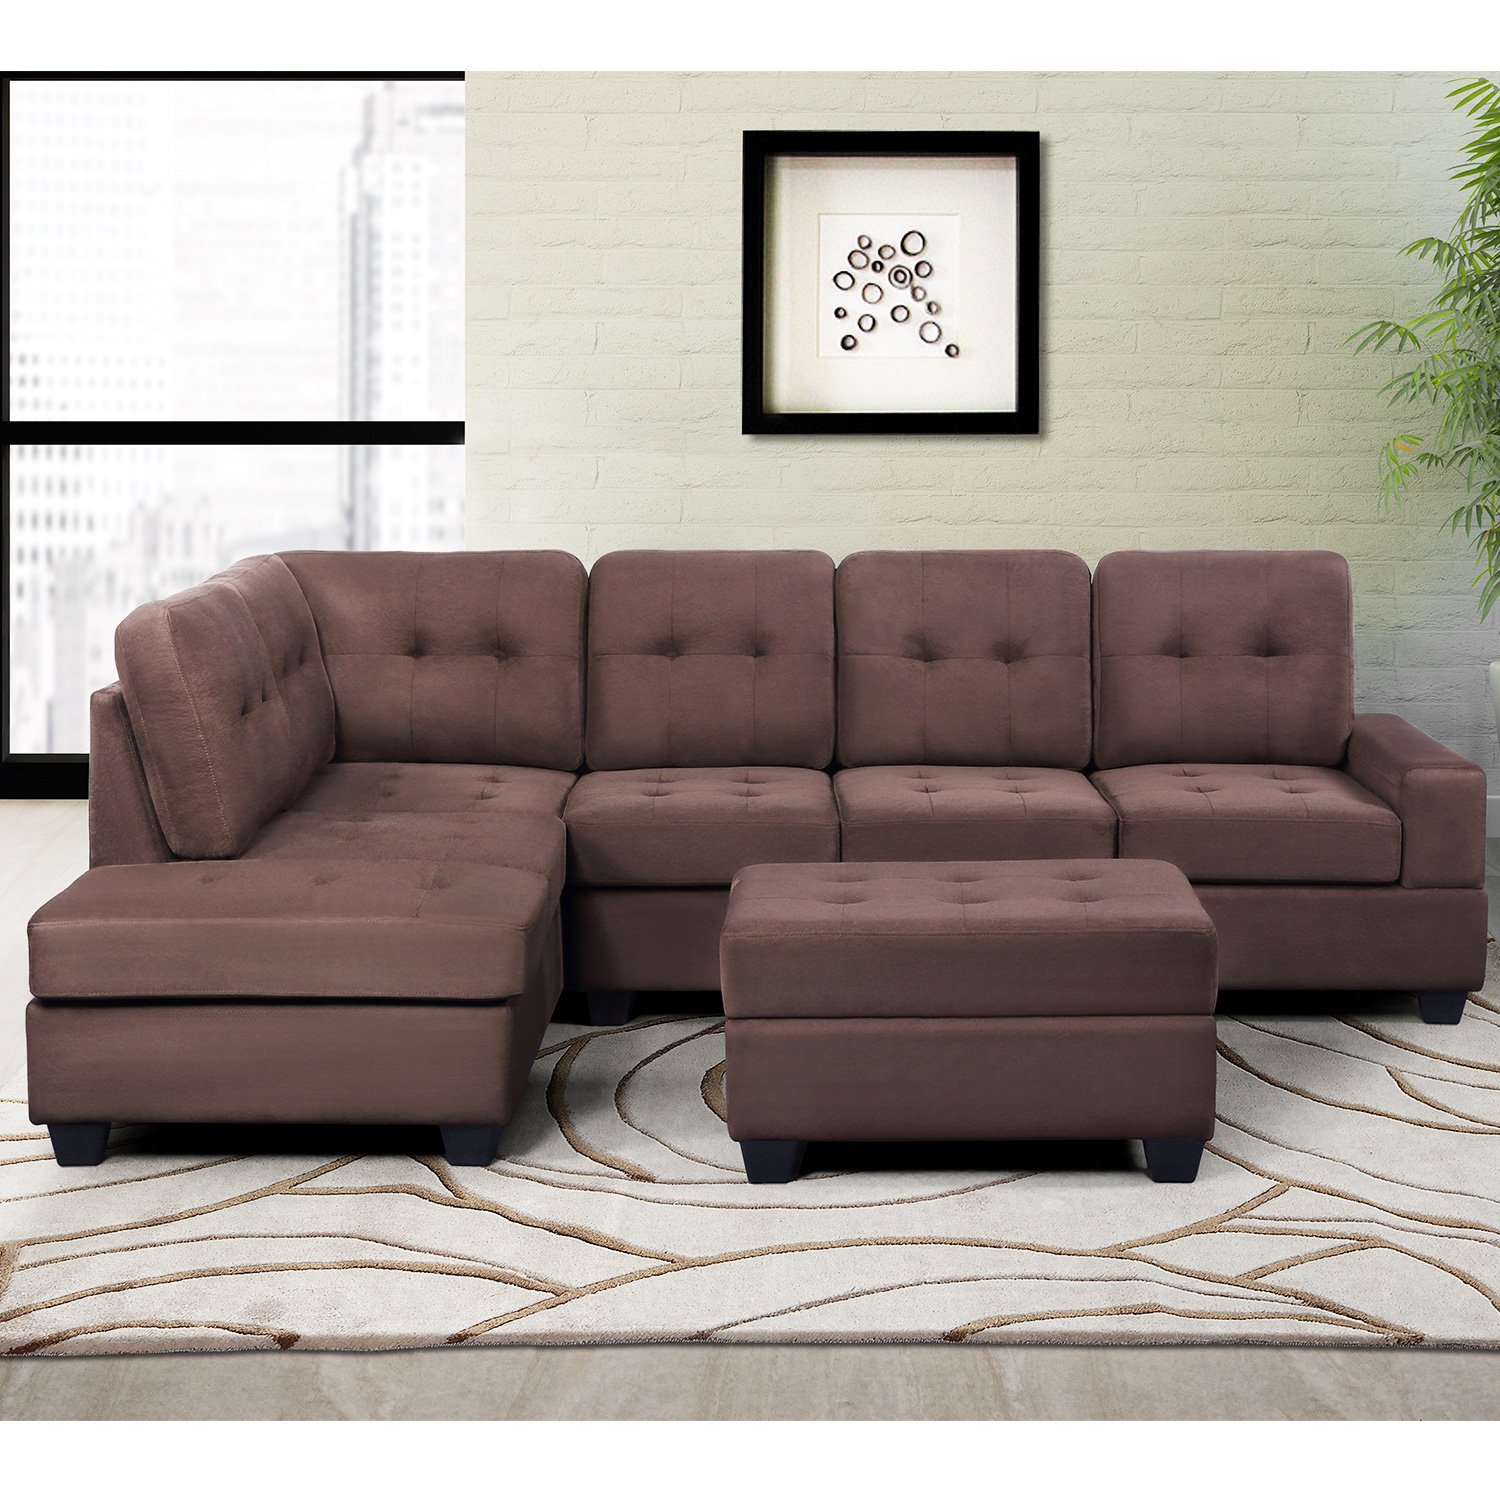 Harper & Bright Designs 3 Piece Sectional Sofa Microfiber with Reversible Chaise Lounge Storage Ottoman and Cup Holders